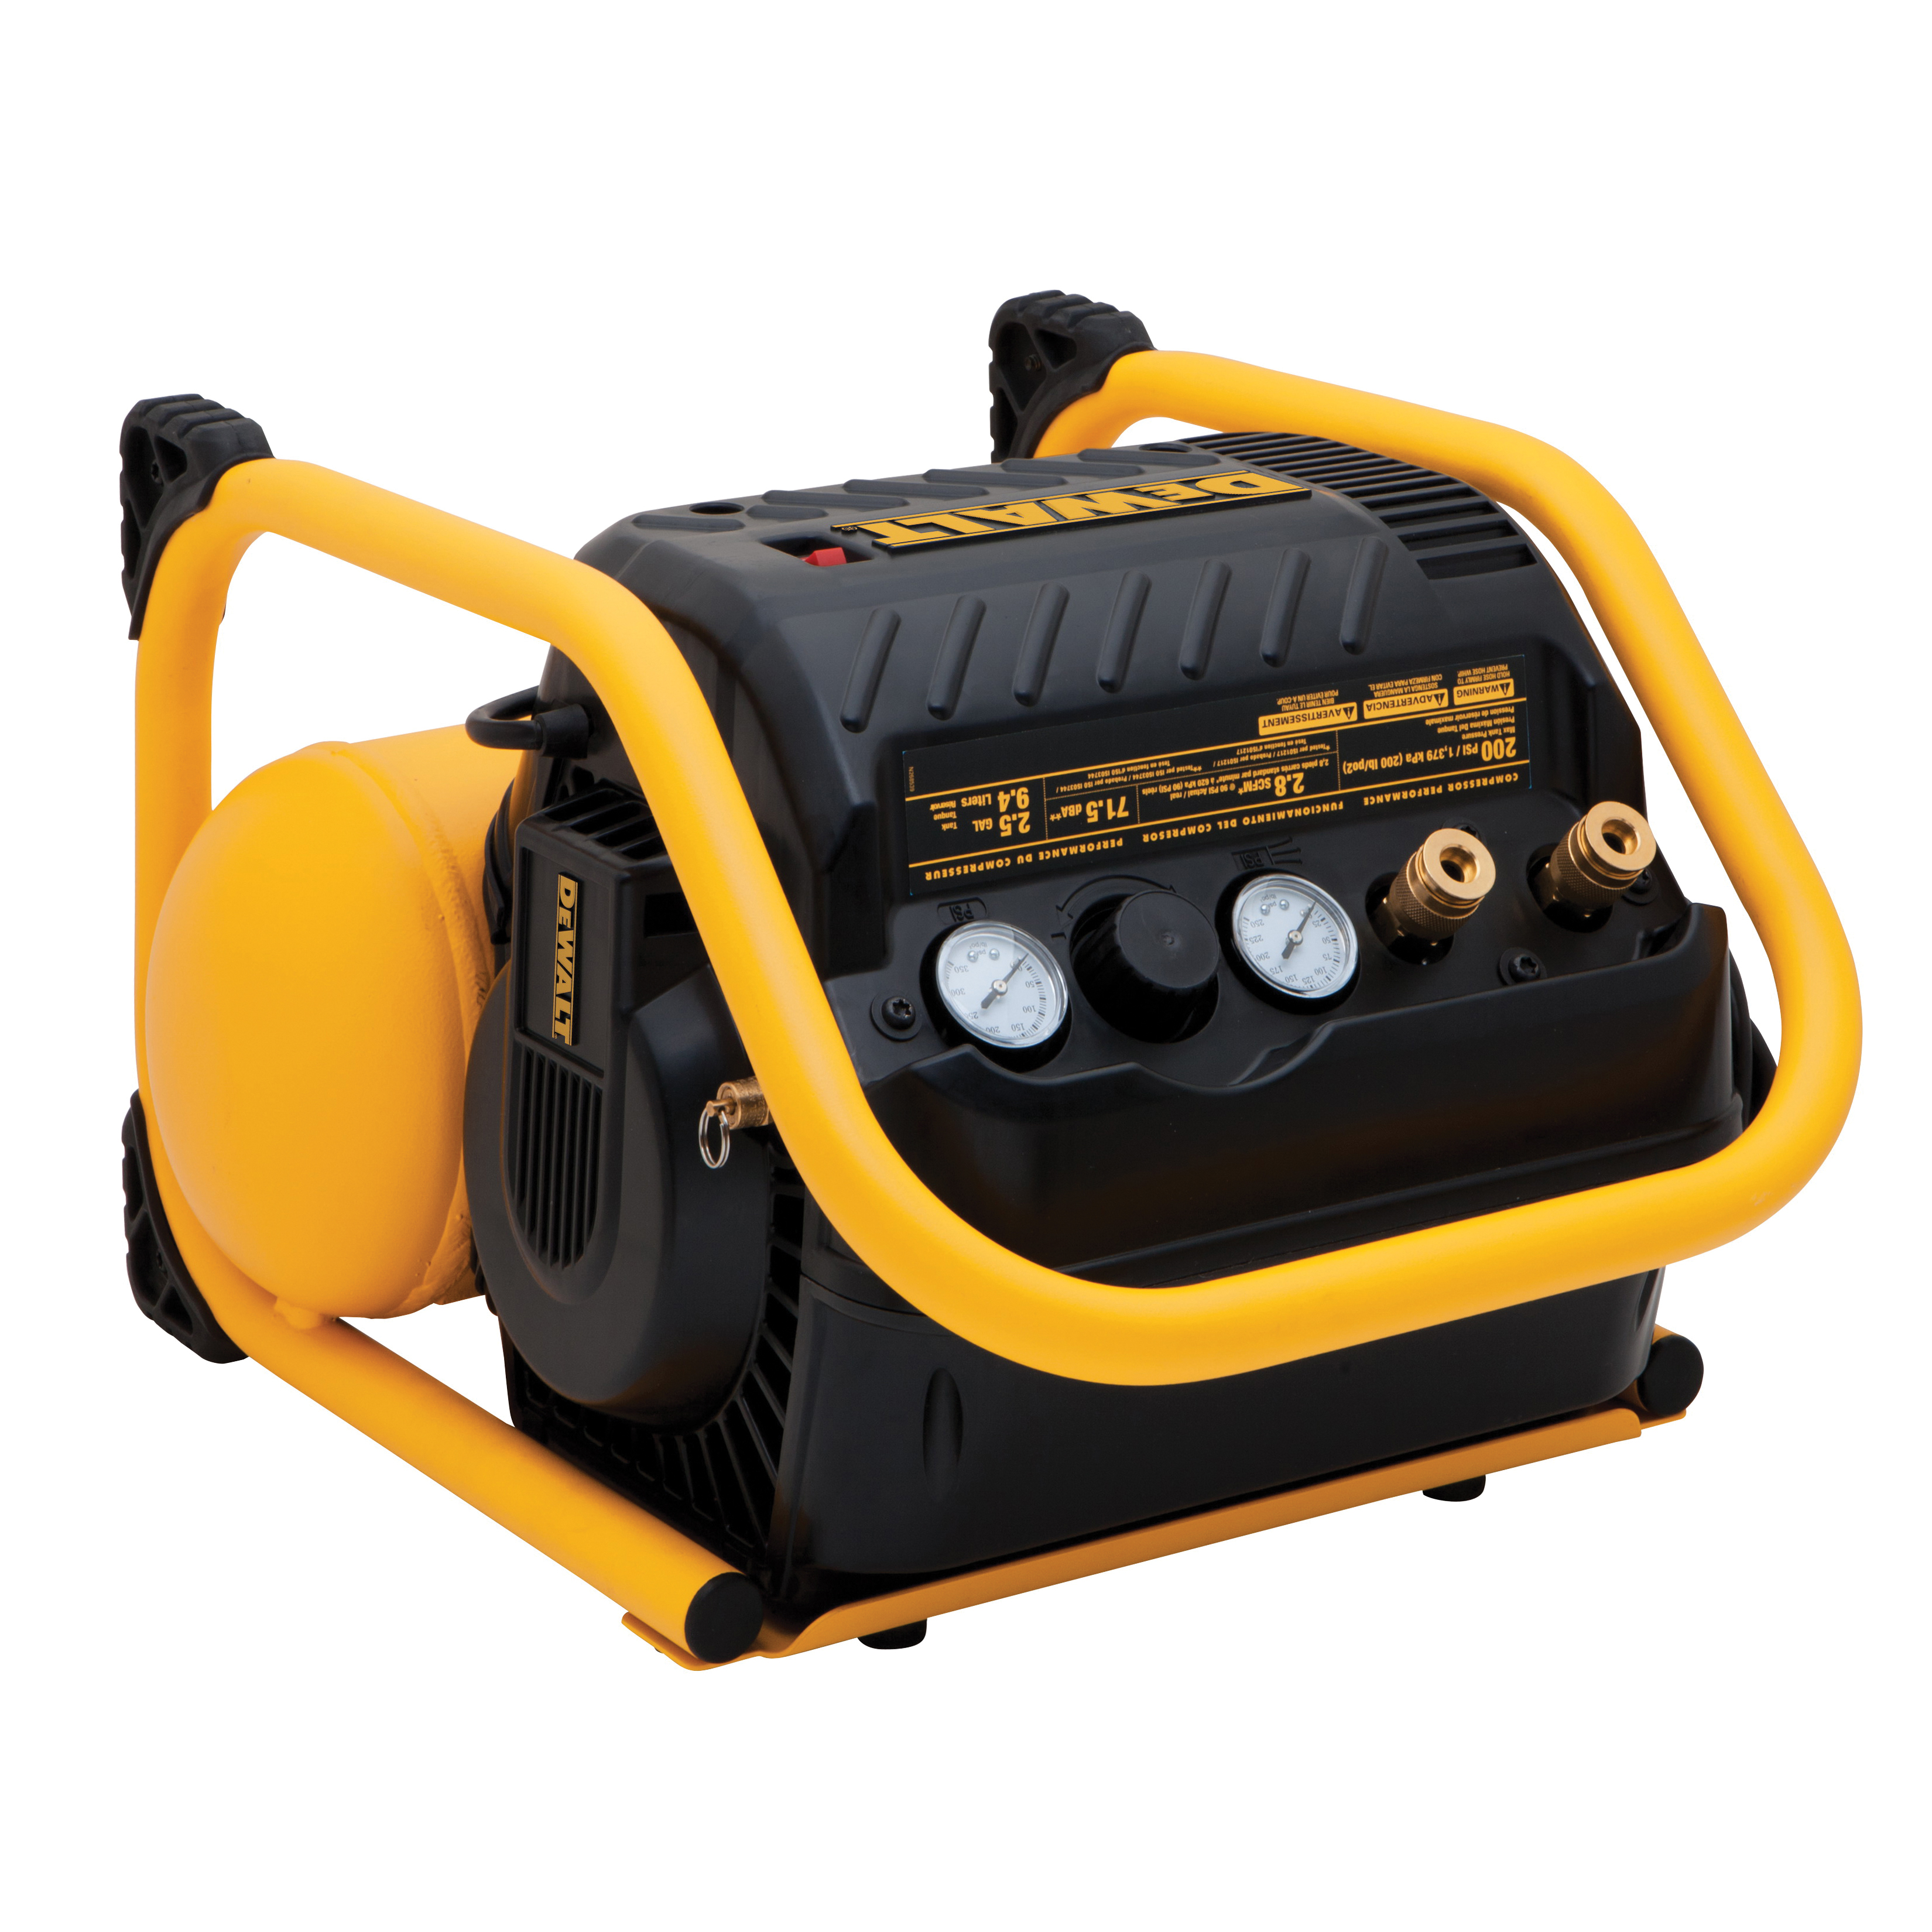 Picture of DeWALT DWFP55130 Quiet Trim Compressor, 2.5 gal Tank, 1.1 hp, 120 V, 200 psi Pressure, 4 scfm Air